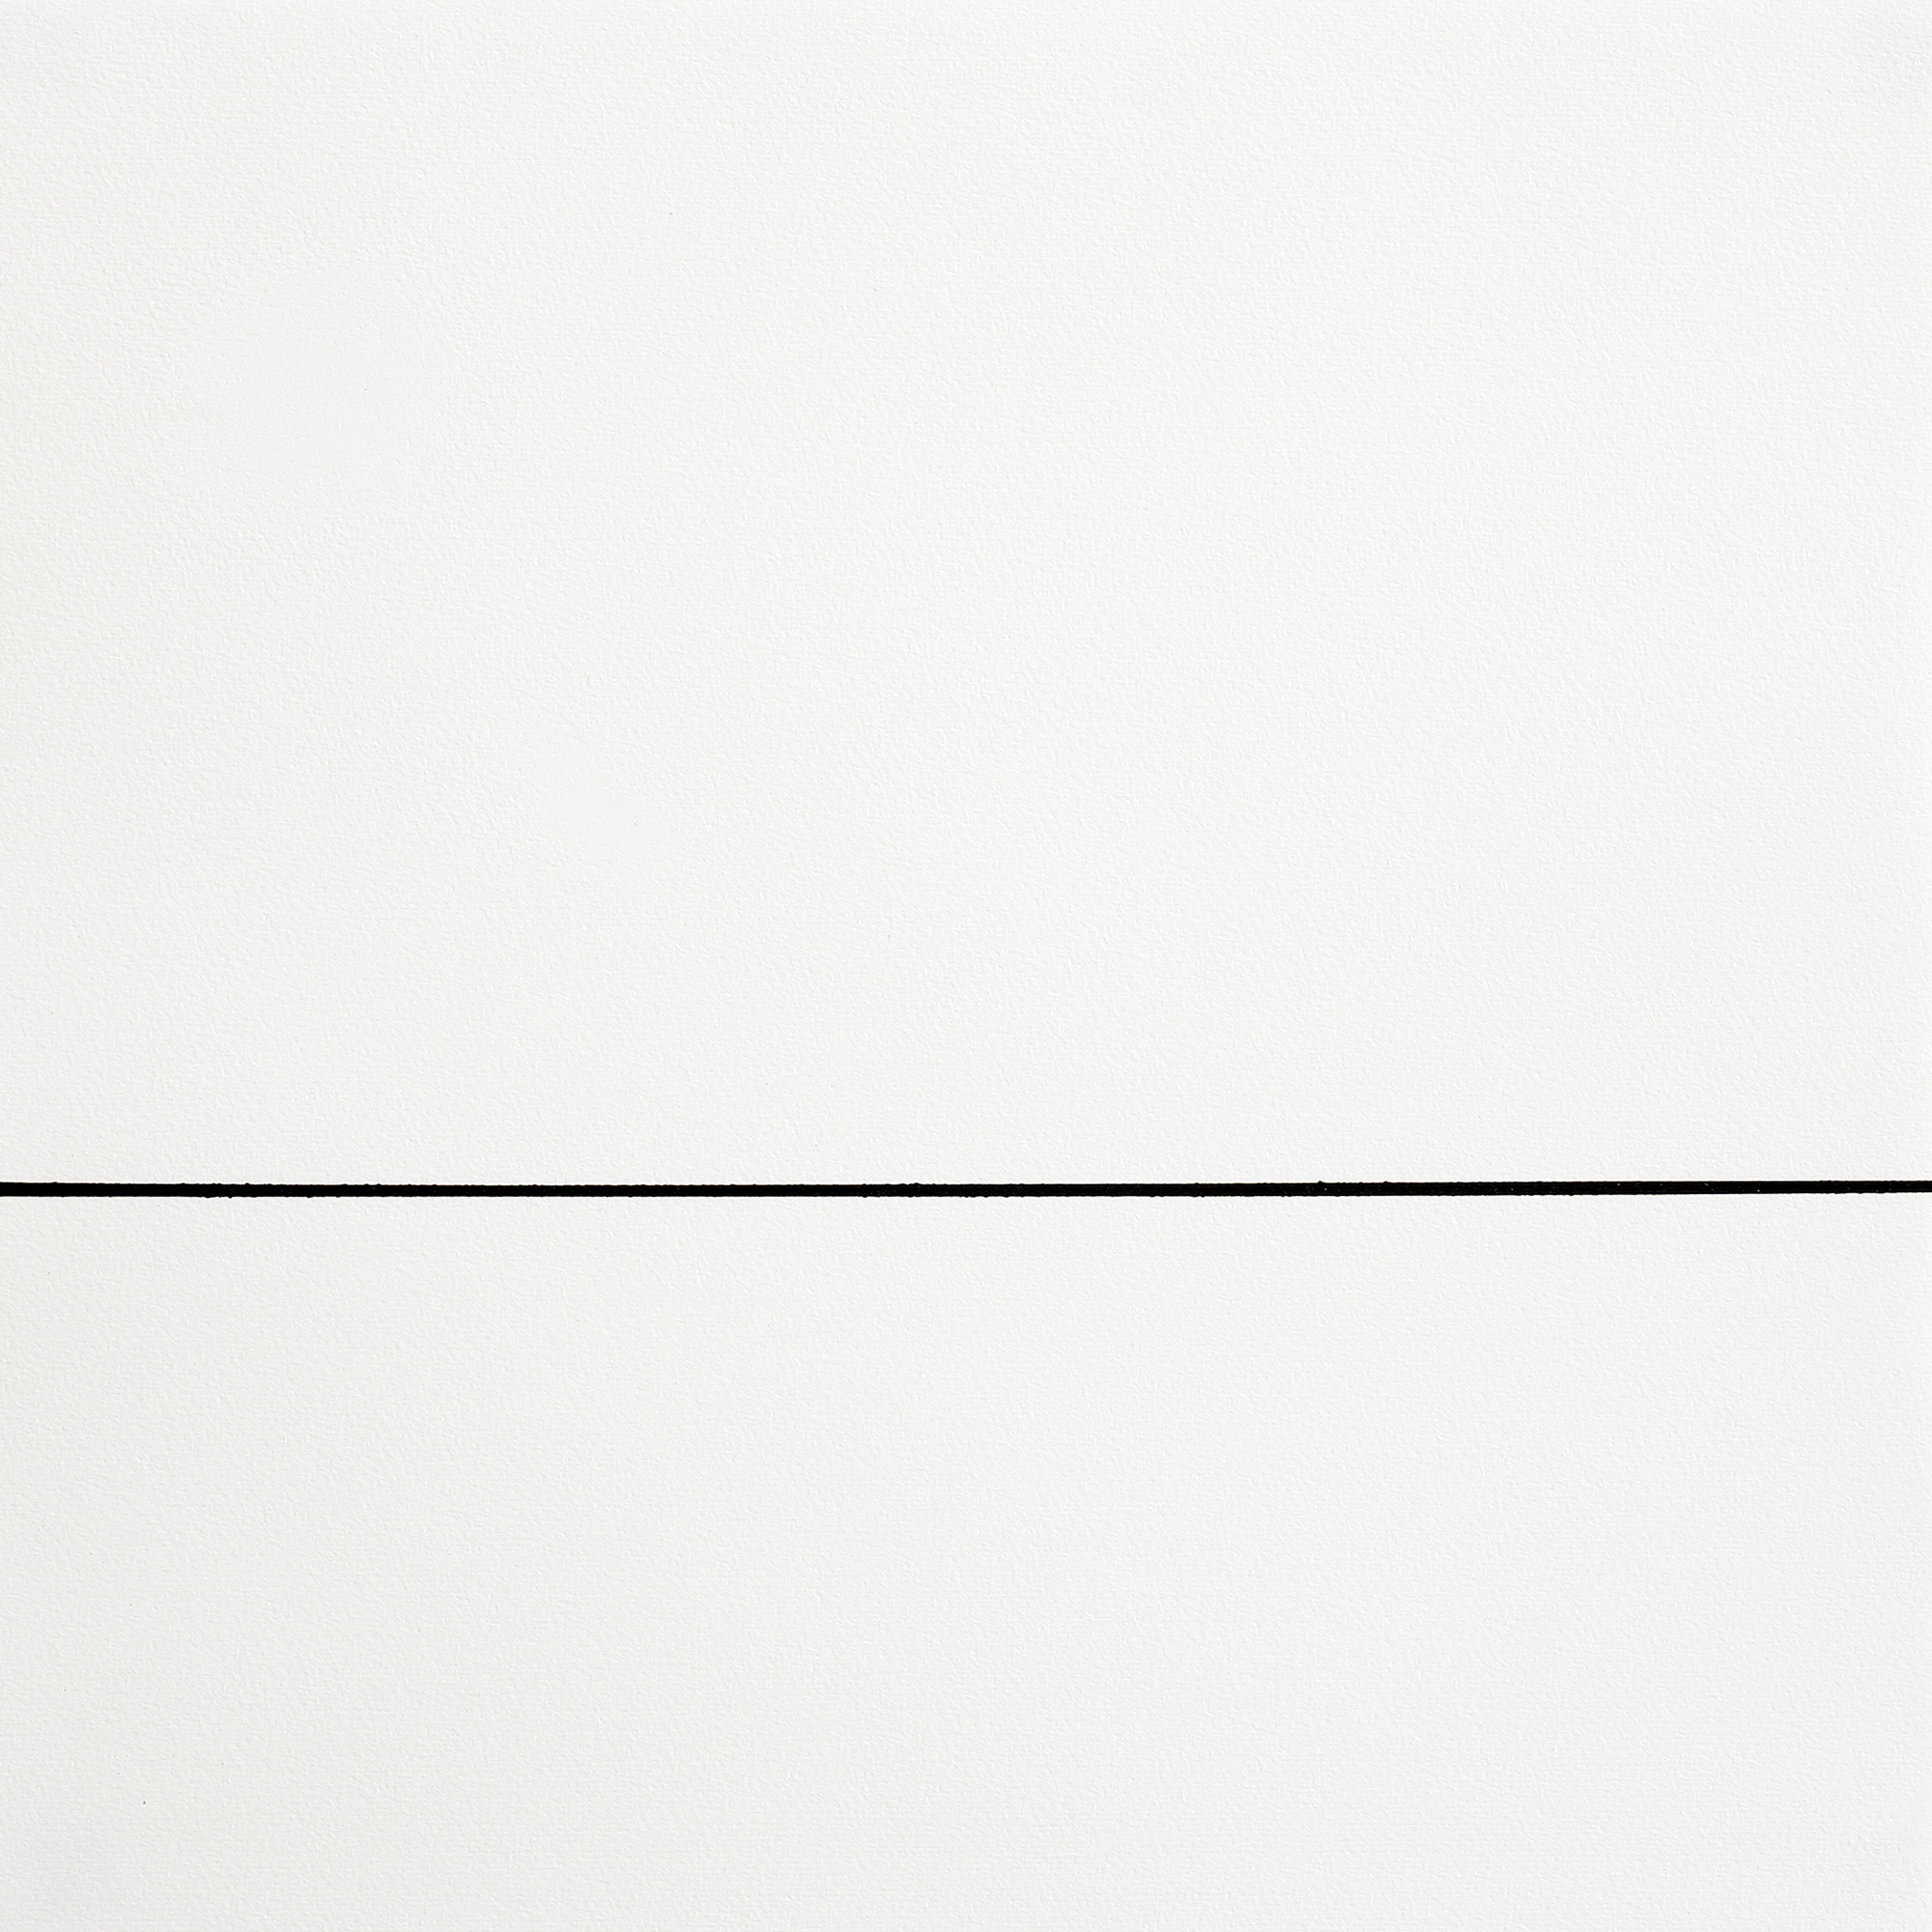 Untitled, 2010, lacquer on paper